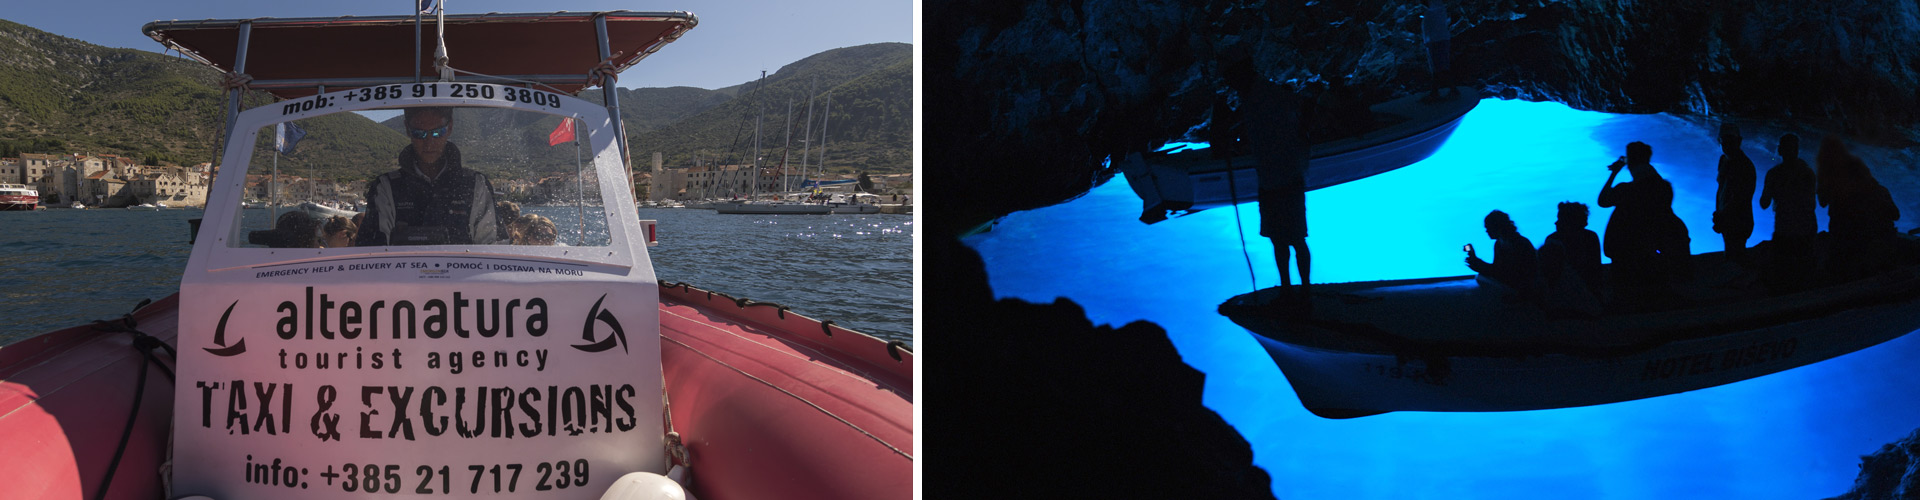 blue cave alternatura - vis - komiza